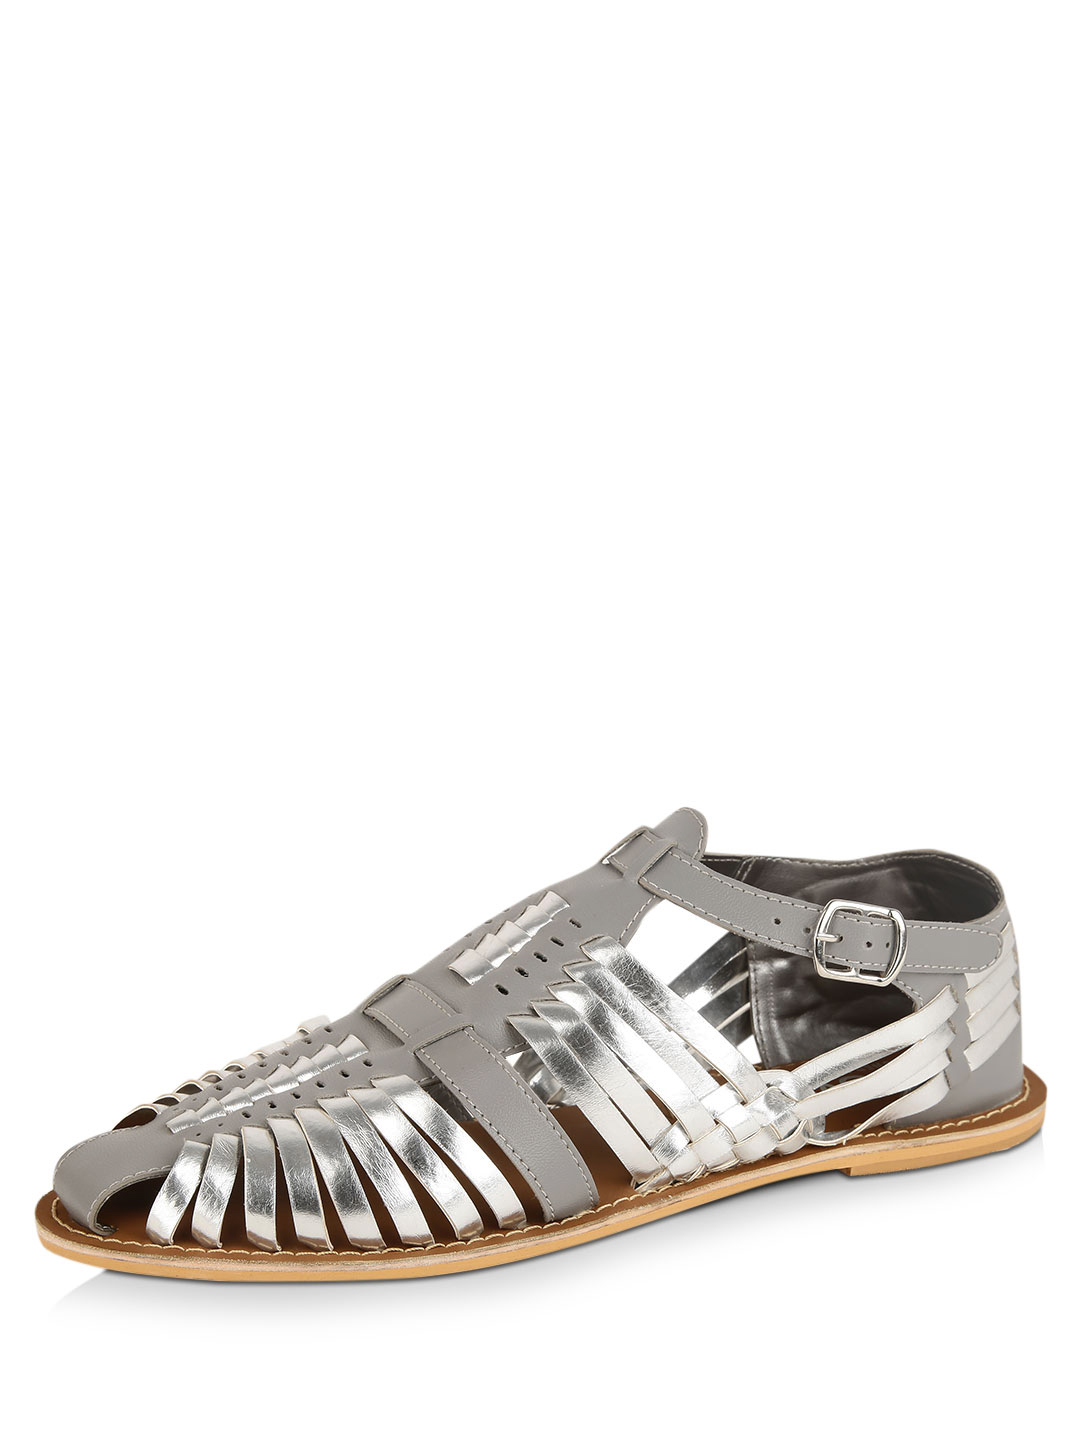 KOOVS Silver Woven Buckle Shoes 1